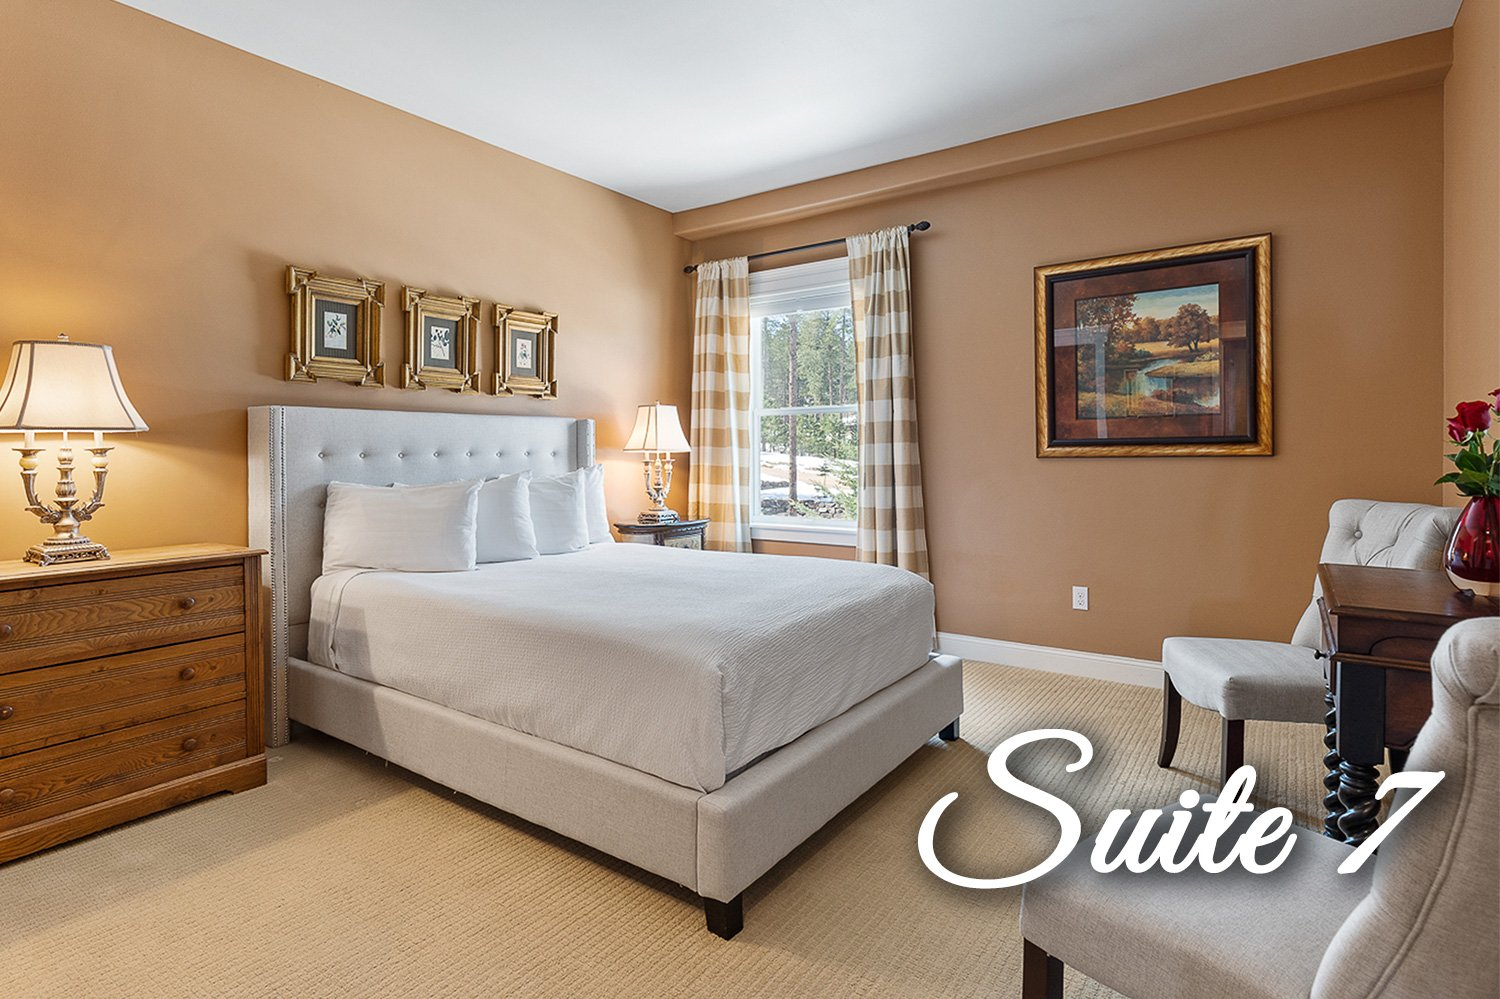 Suite 8 Bed and in room spa bath